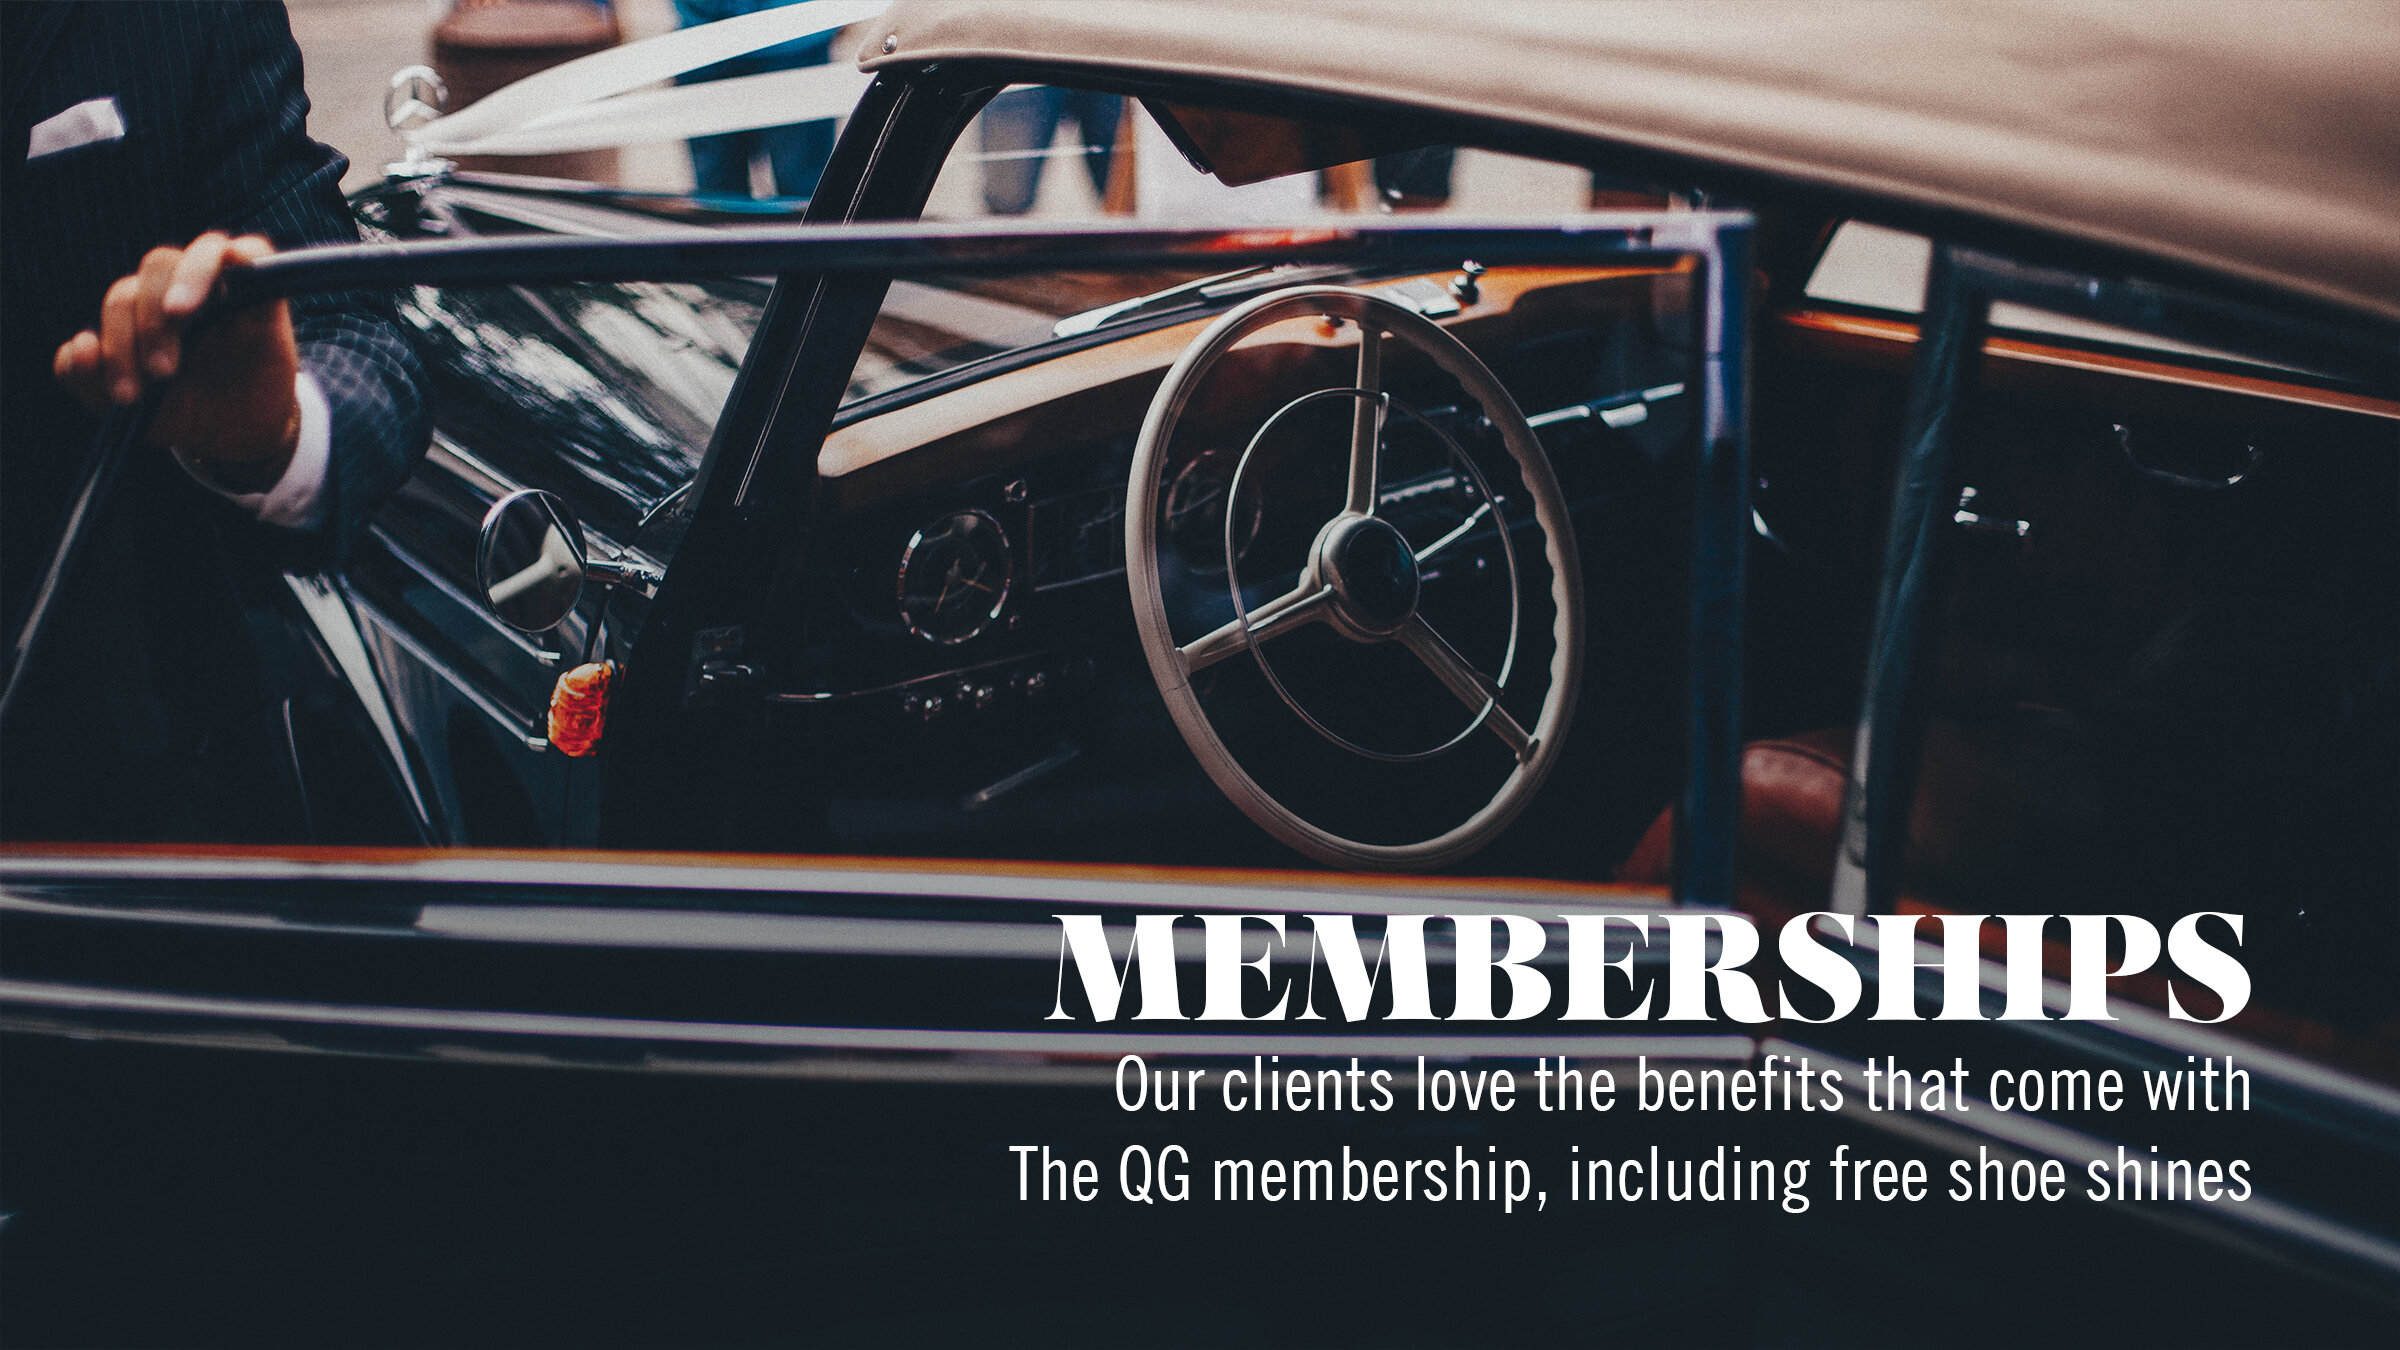 Enjoy extra benefits by becoming a member